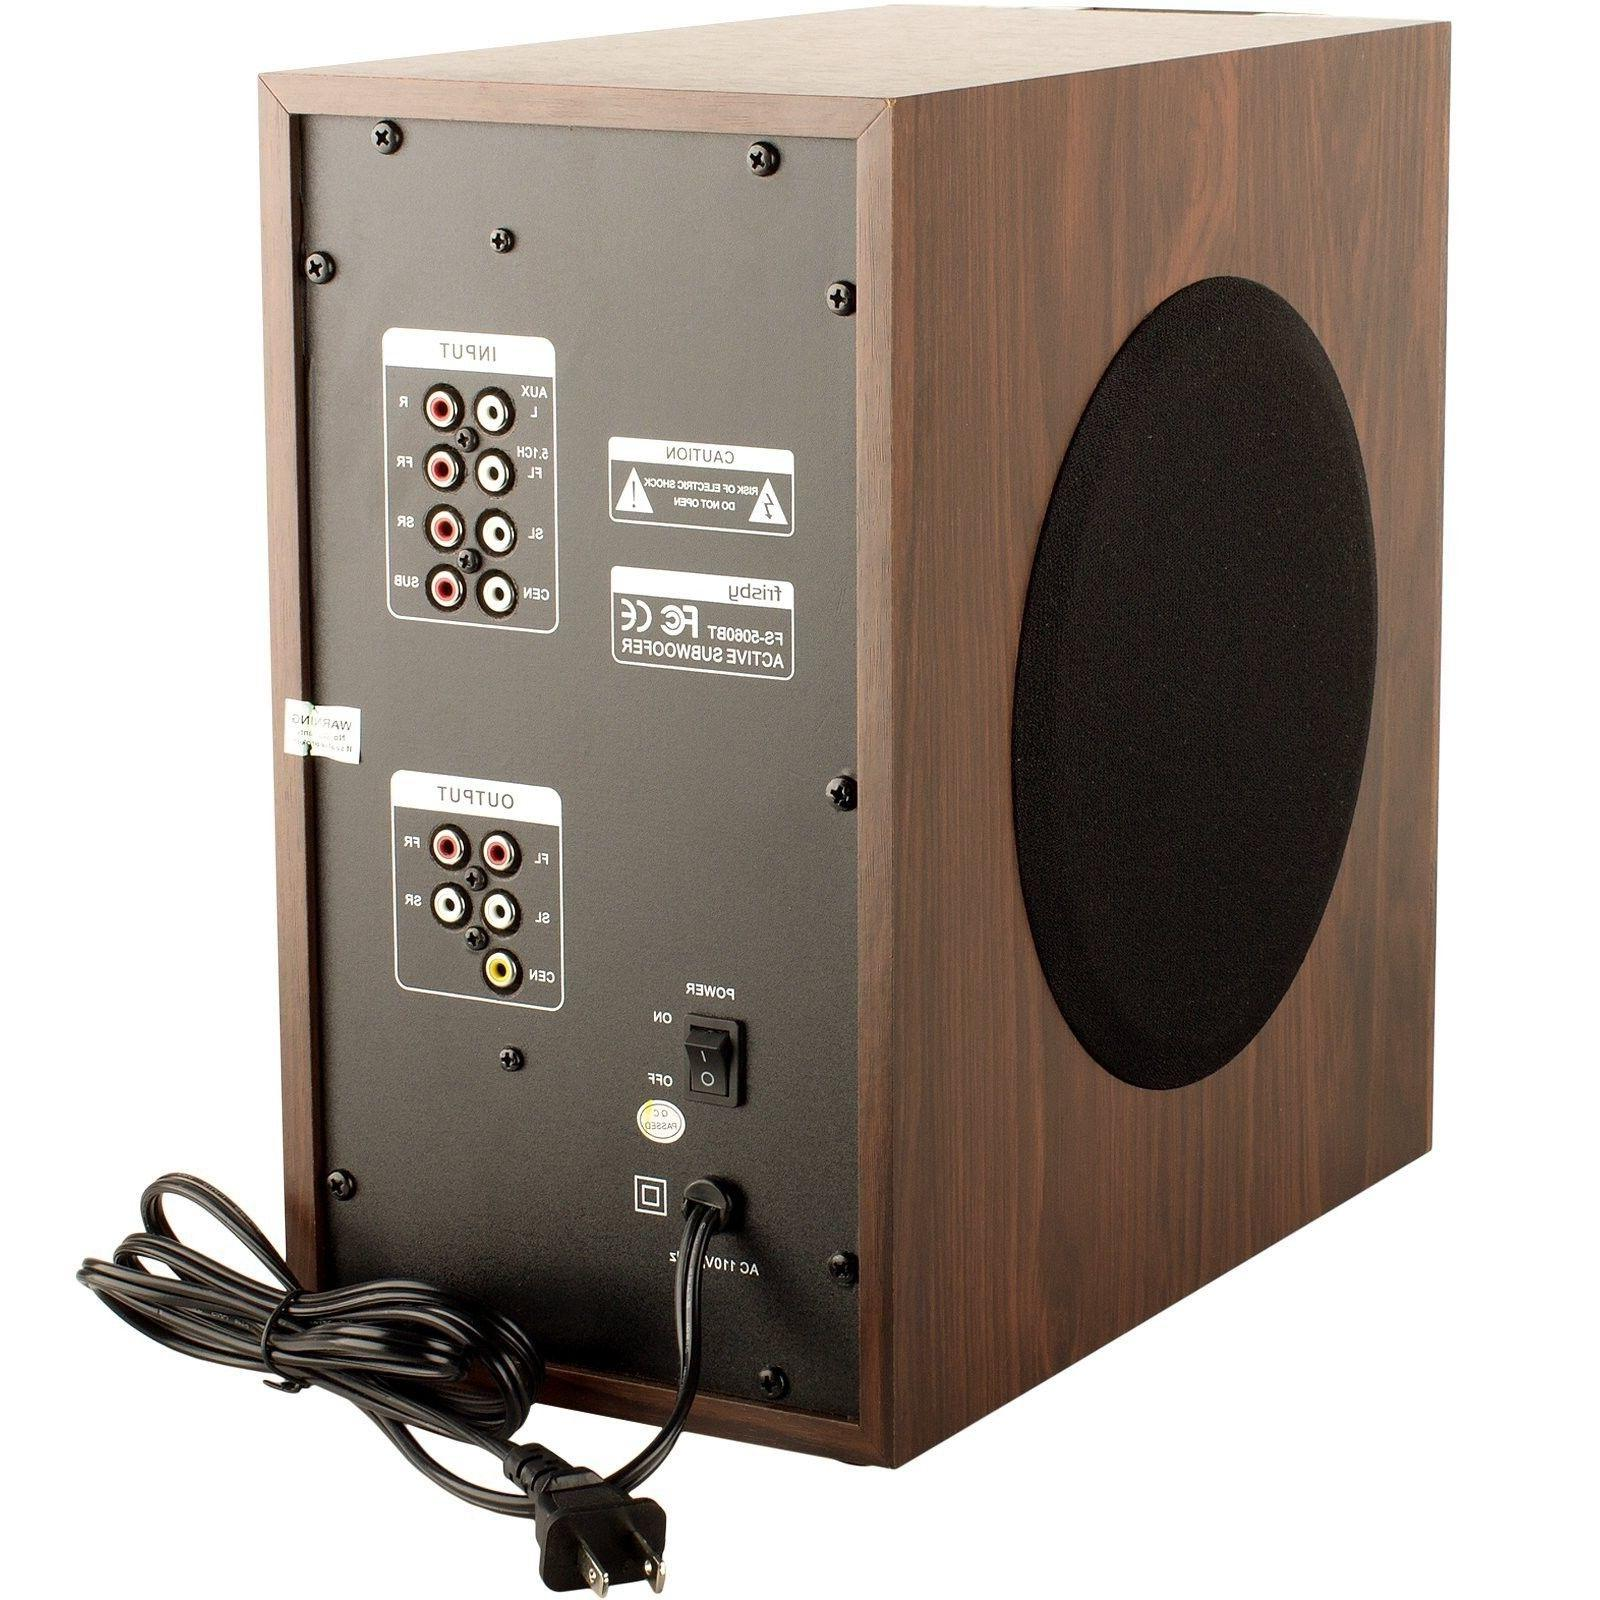 Frisby Sound System and Remote